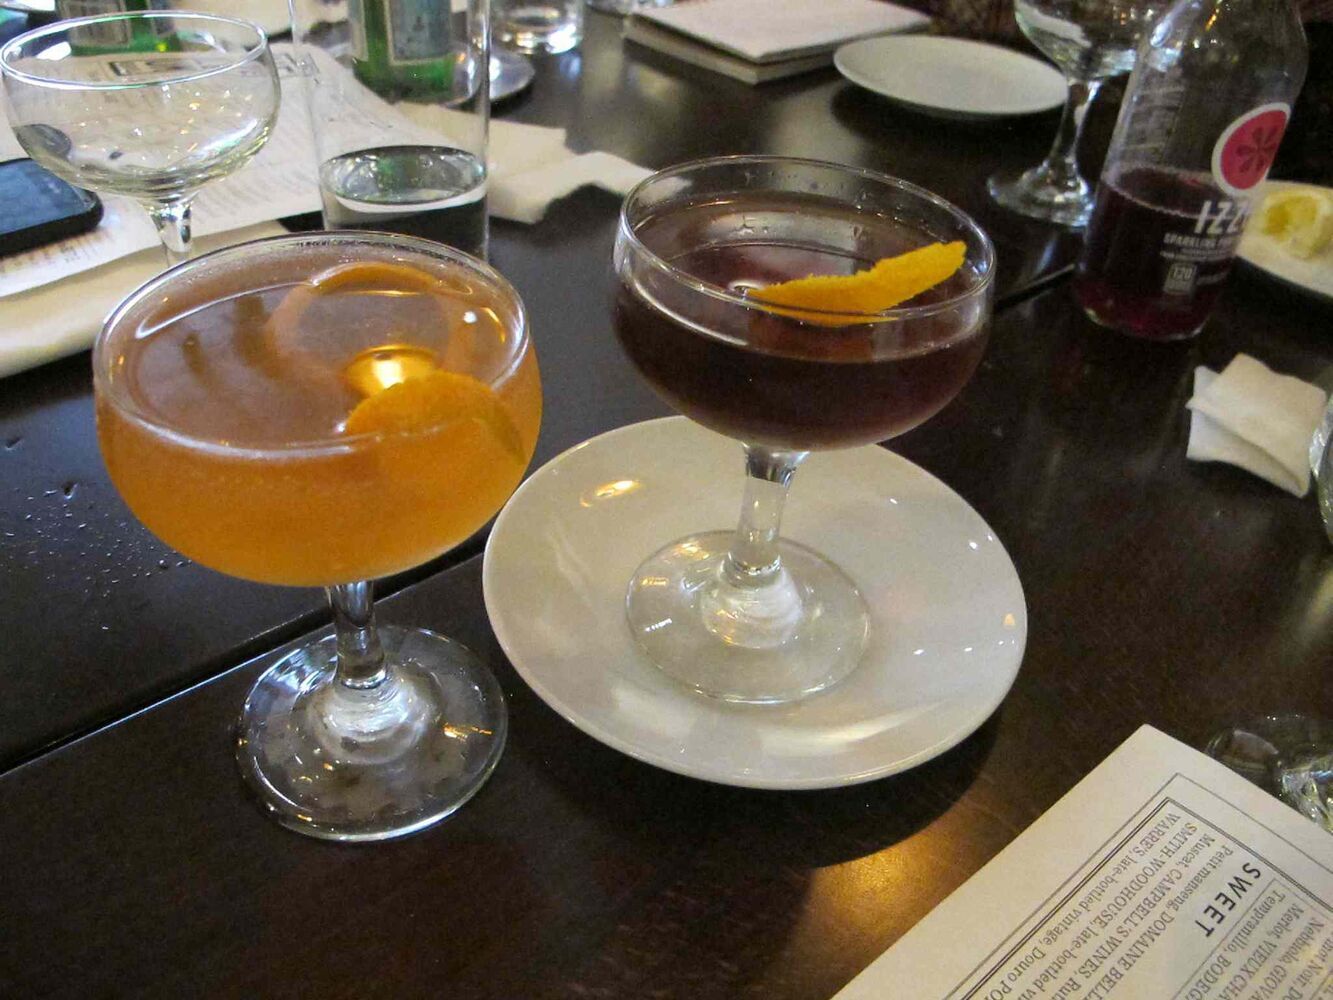 Cocktails at Vellum. (Jill Wilson / Winnipeg Free Press)